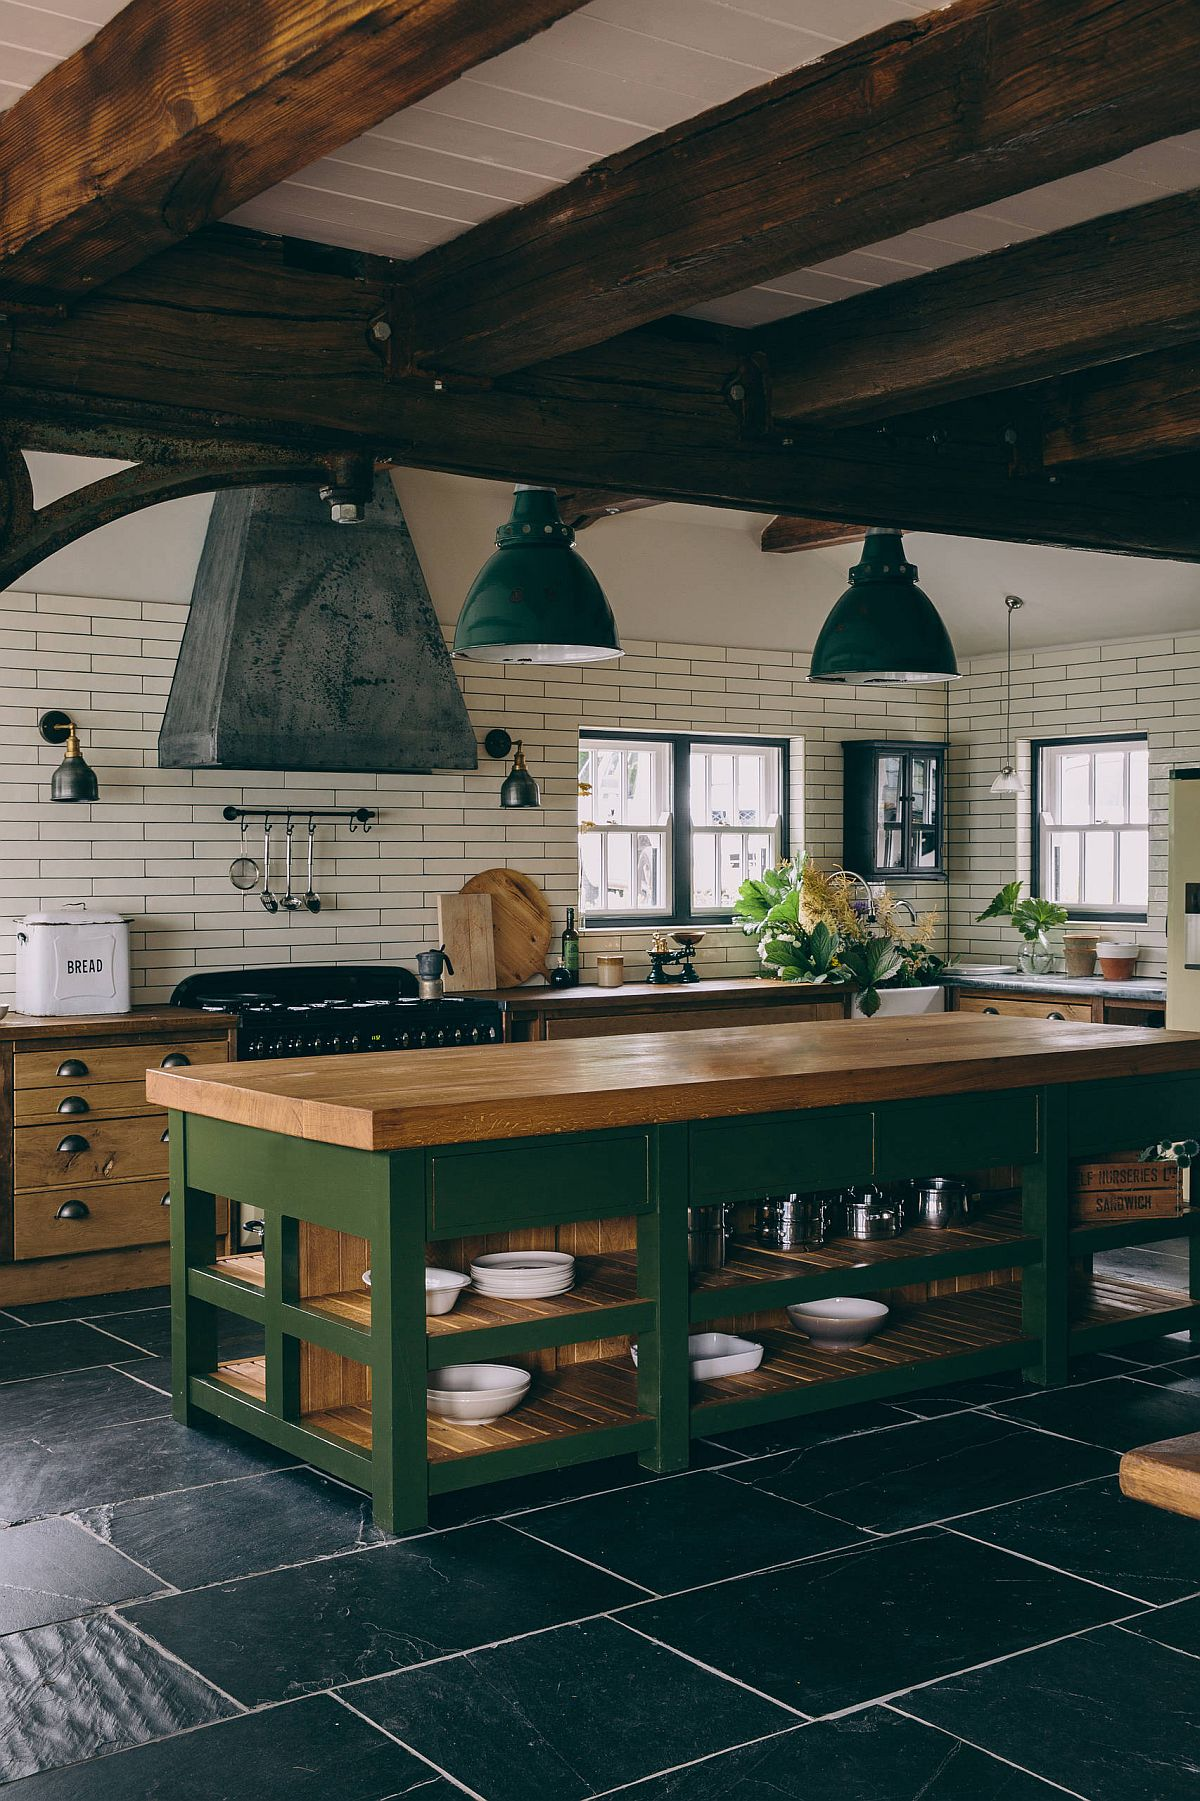 Brilliant-use-of-green-in-the-rustic-kitchen-with-wooden-countertops-and-ceiling-beams-94509